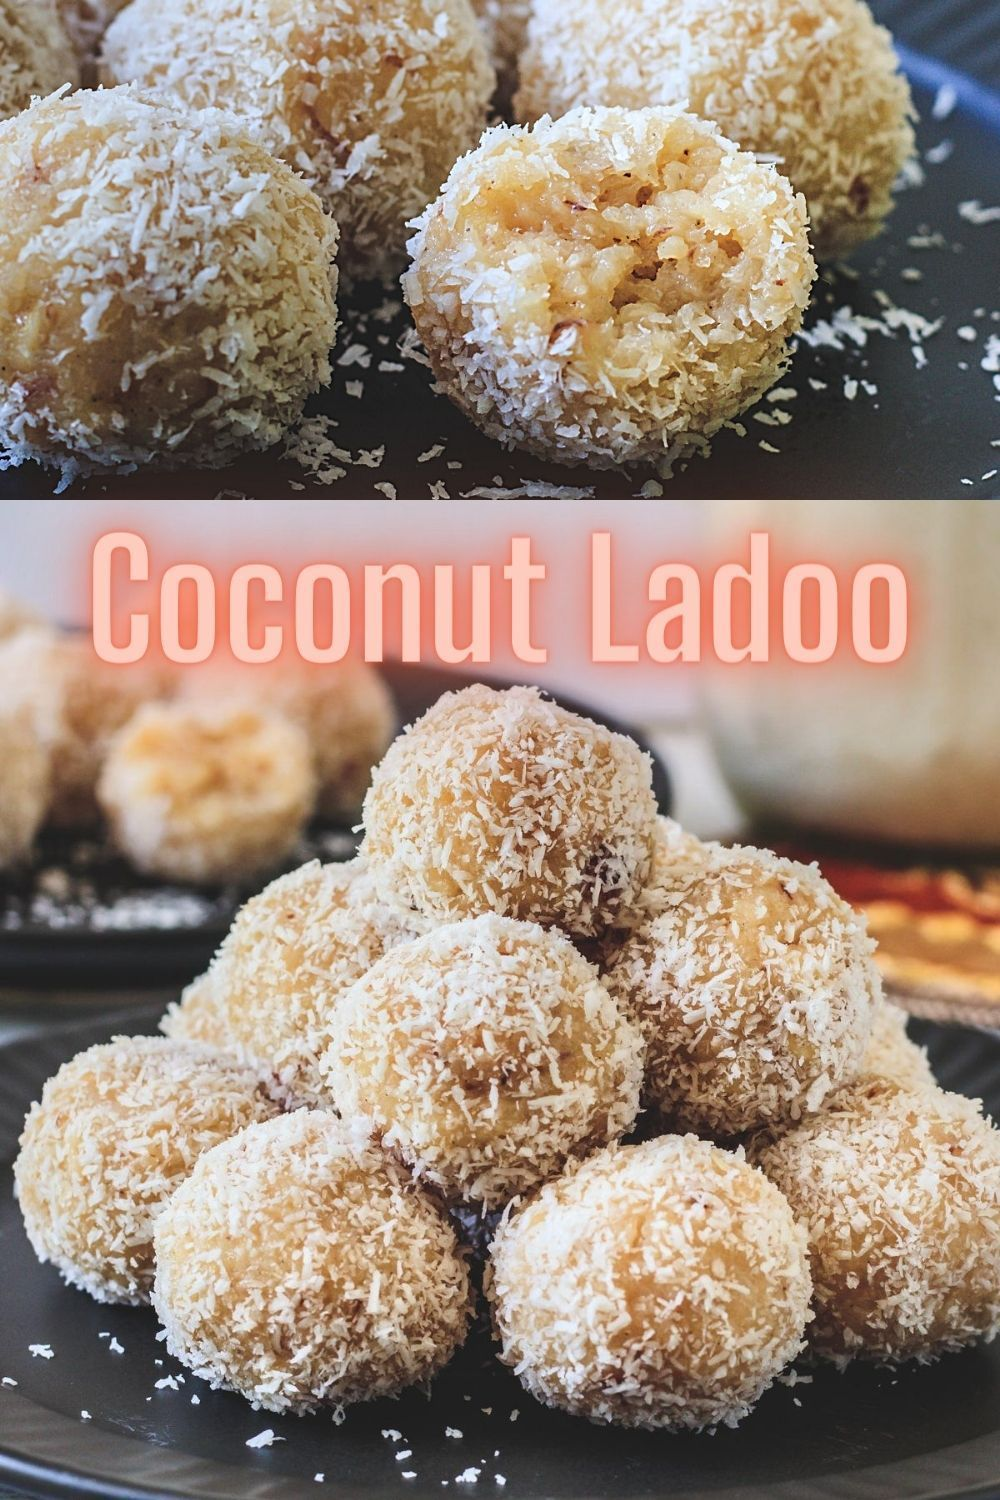 Coconut Ladoo Recipe With Condensed Milk Spice Up The Curry Recipe In 2020 Condensed Milk Recipes Recipes Indian Desserts